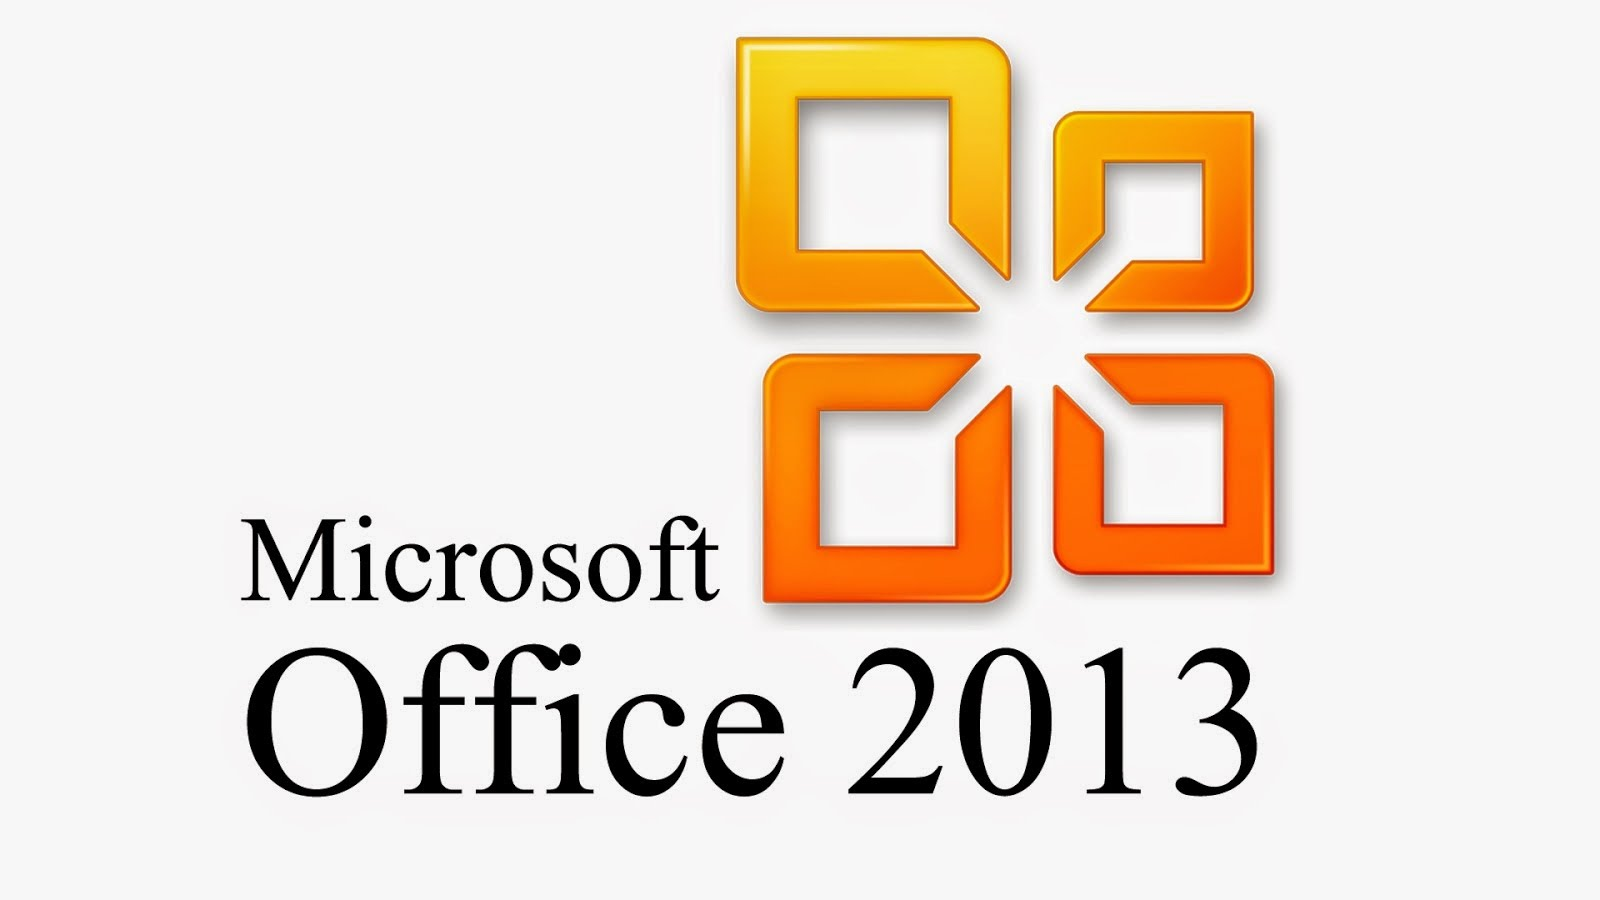 Microsoft Office 2013 feature image